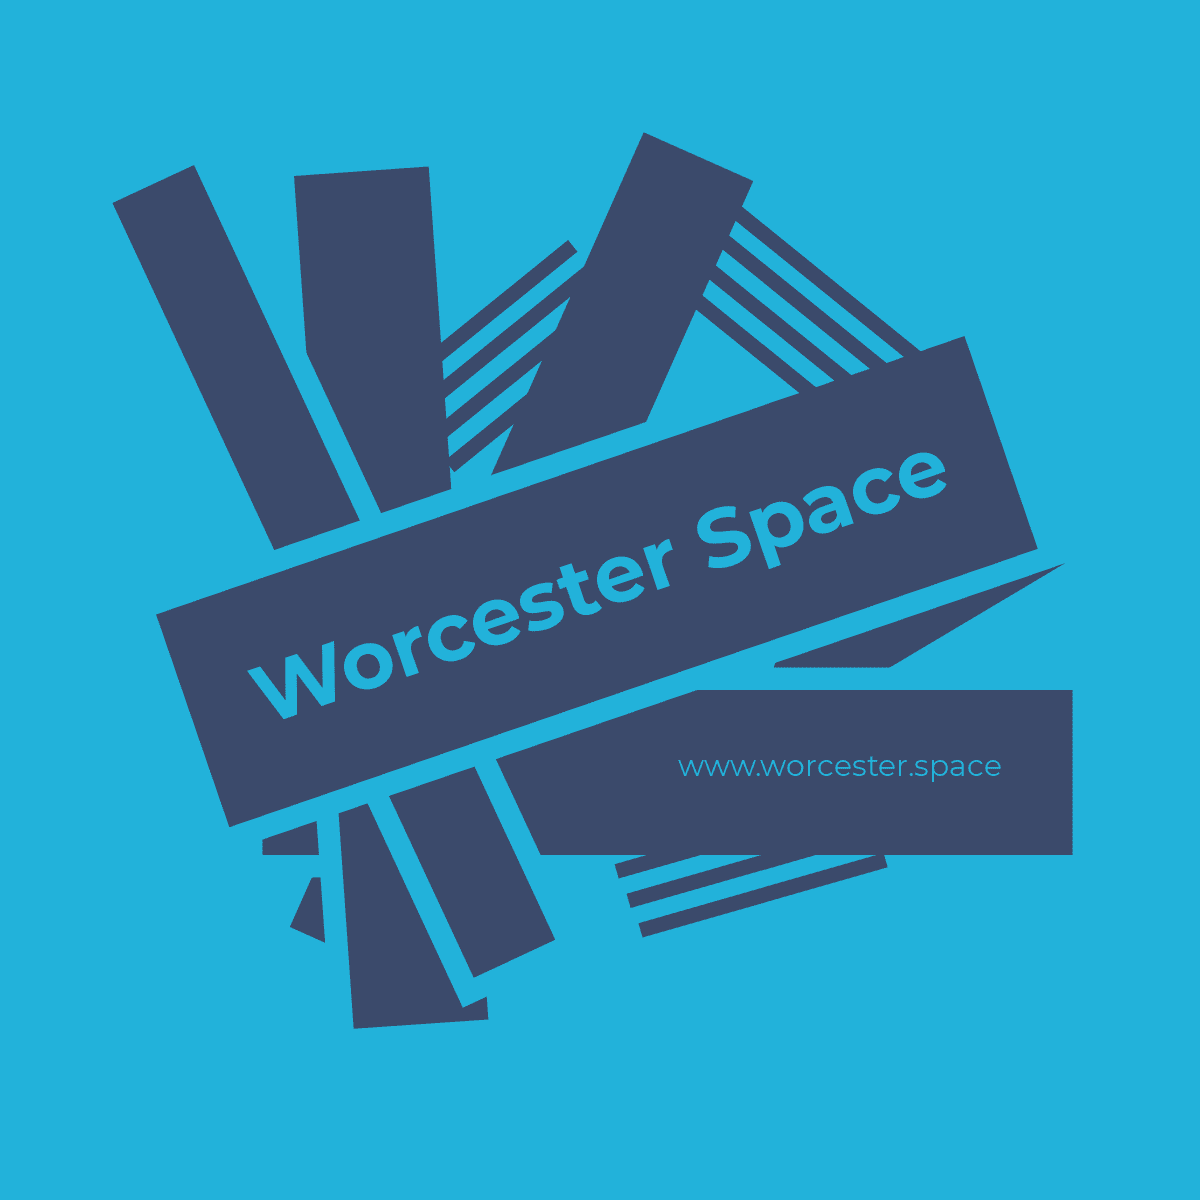 worcester space logo